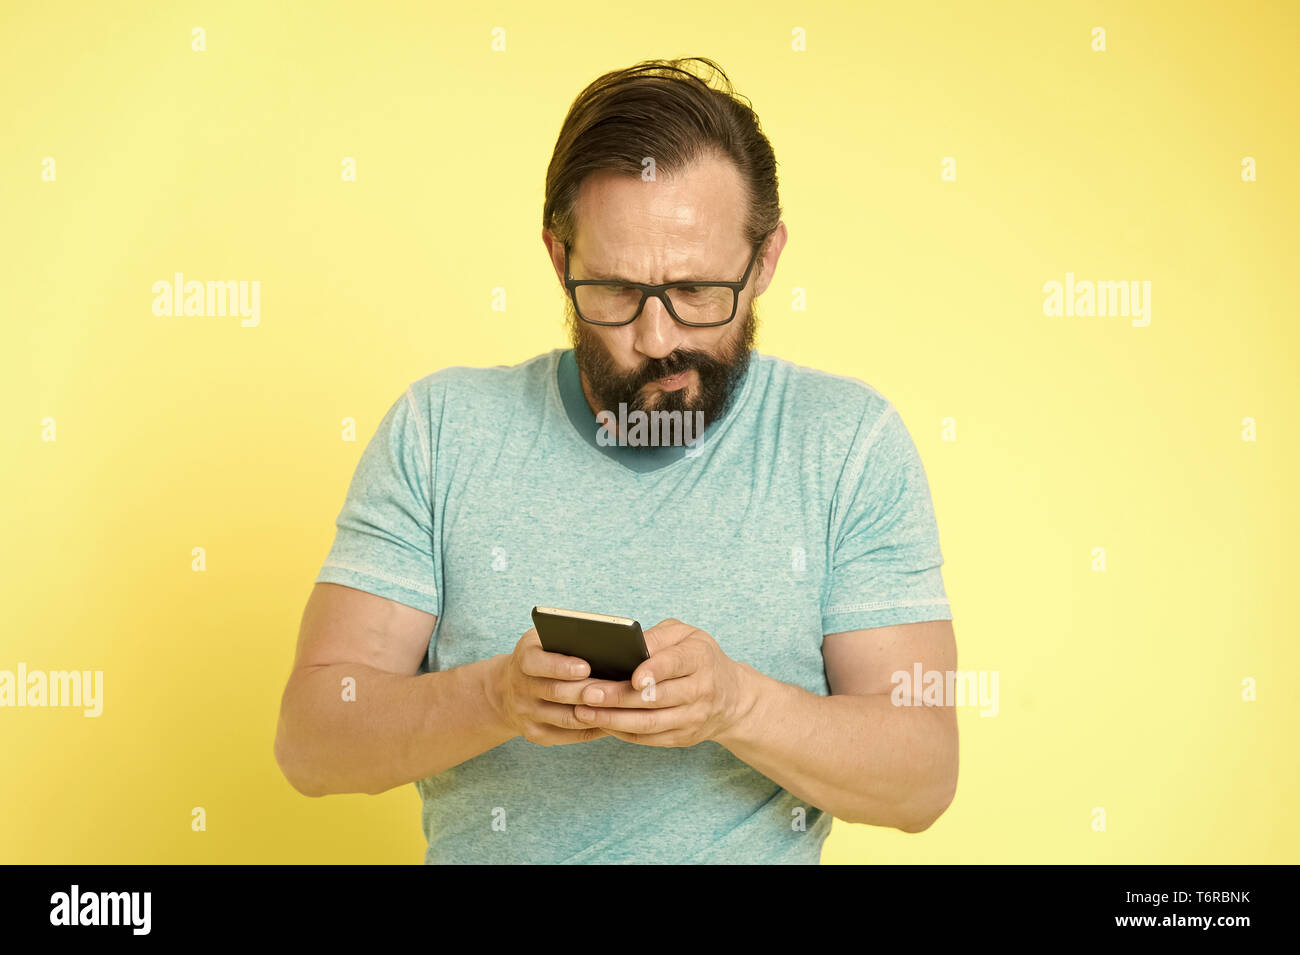 Guy eyeglasses puzzled face use smartphone. Man user interact application smartphone. Guy bearded mature interact mobile interface application. Hard to get used to digital gadget for mature people. - Stock Image